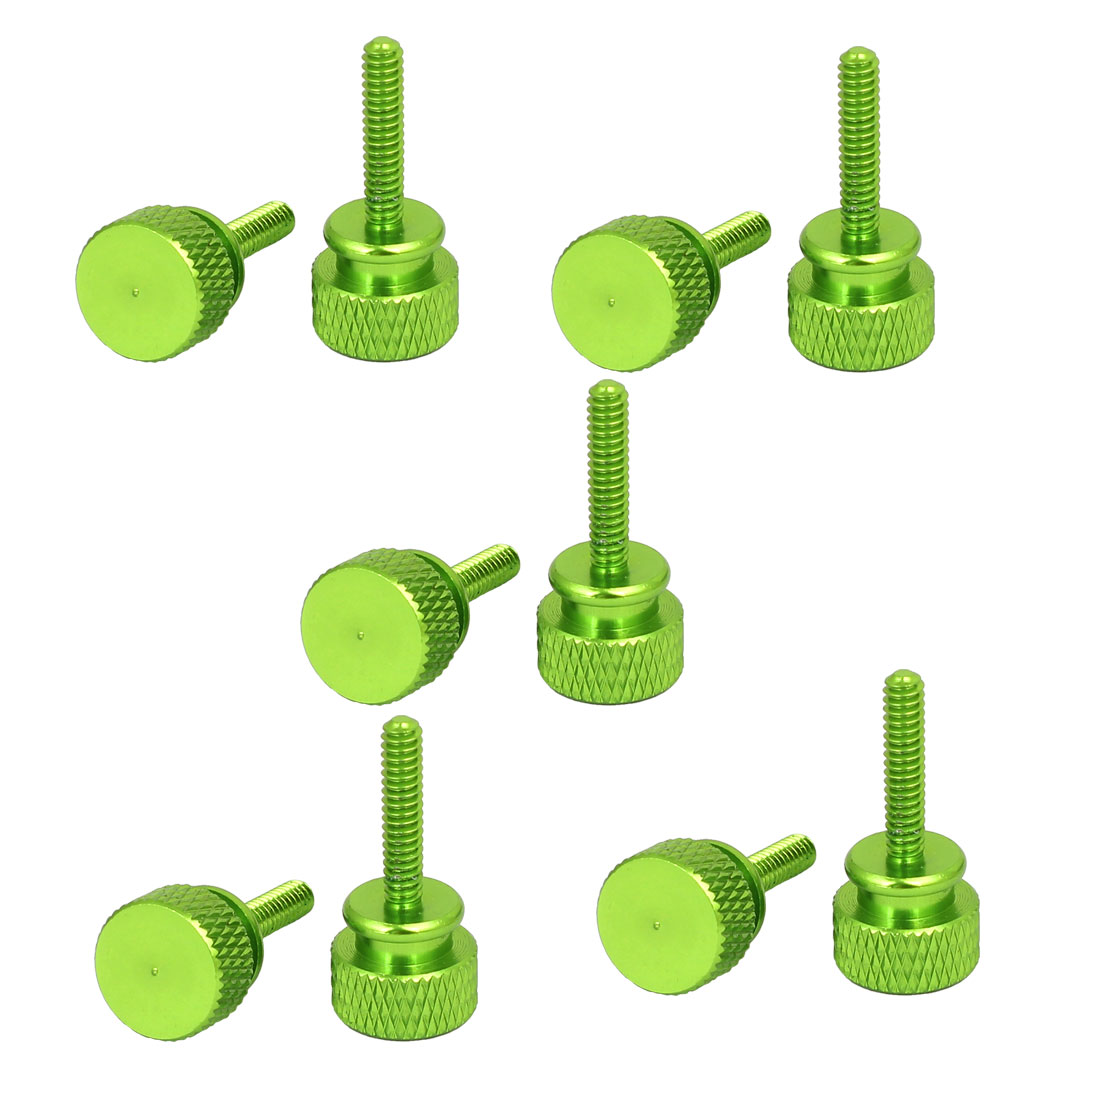 Computer PC Case Round Head Knurled Thumb Screws Green 6#-32 10pcs